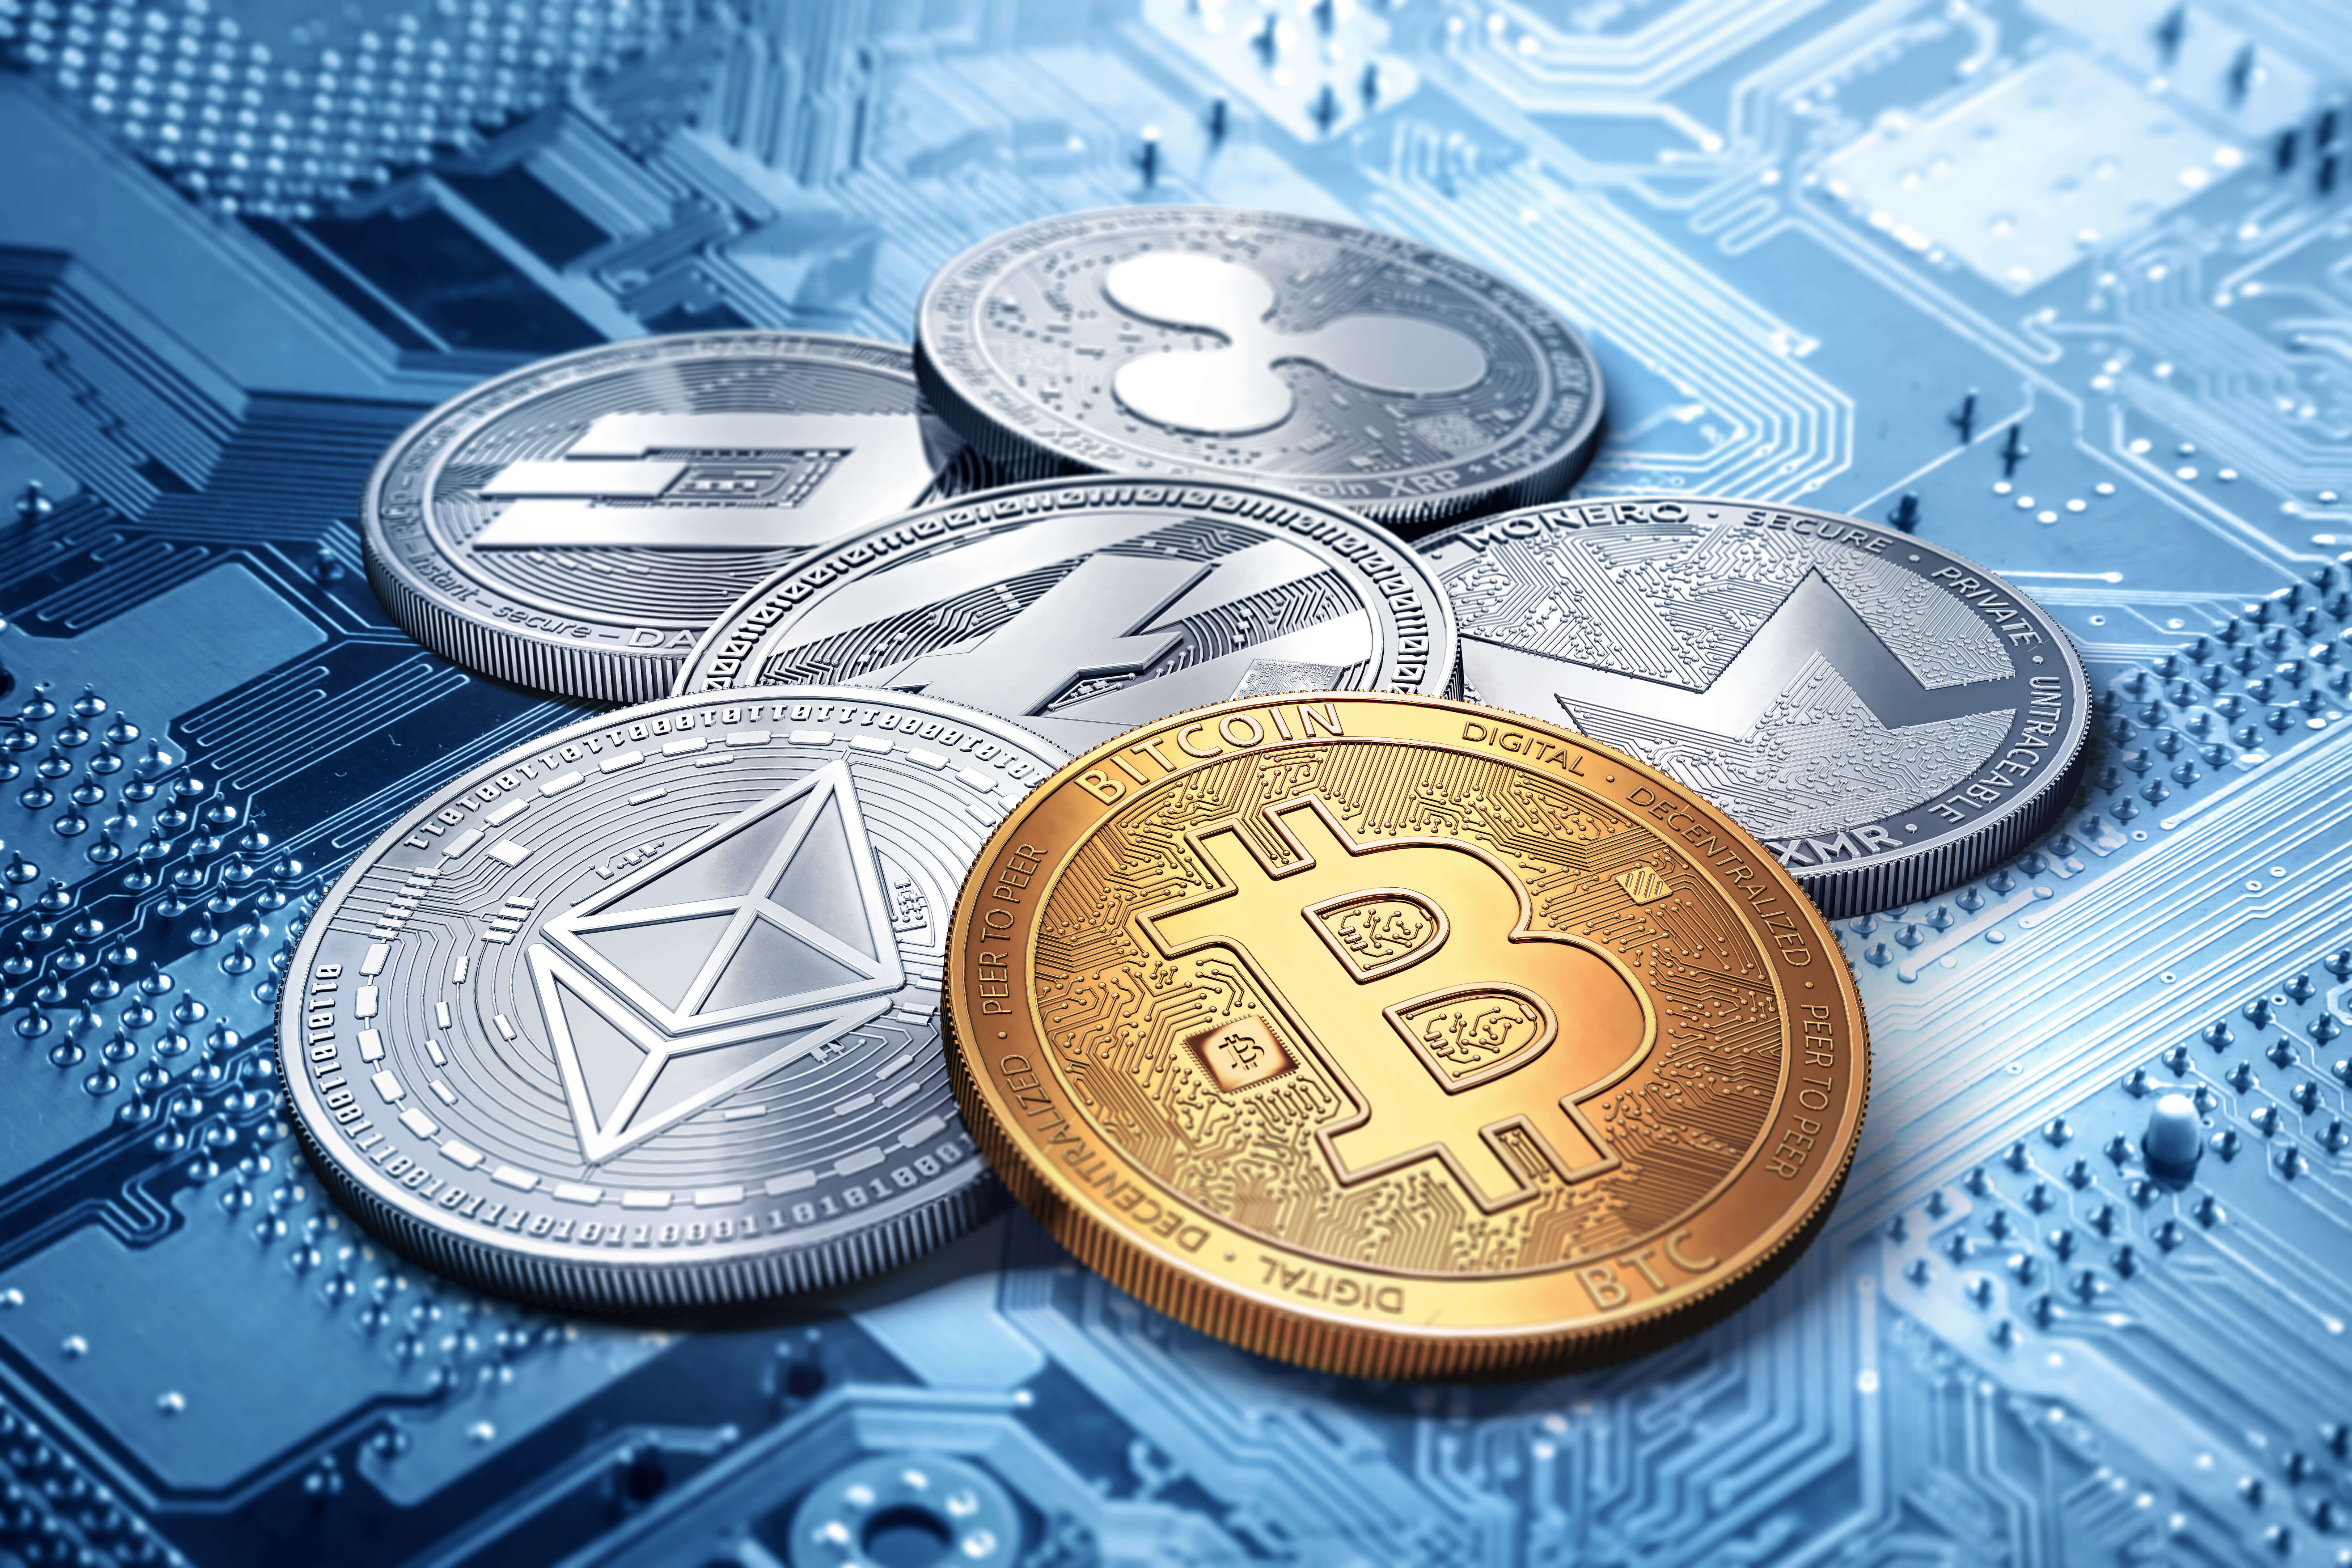 Digital currency market on August 16